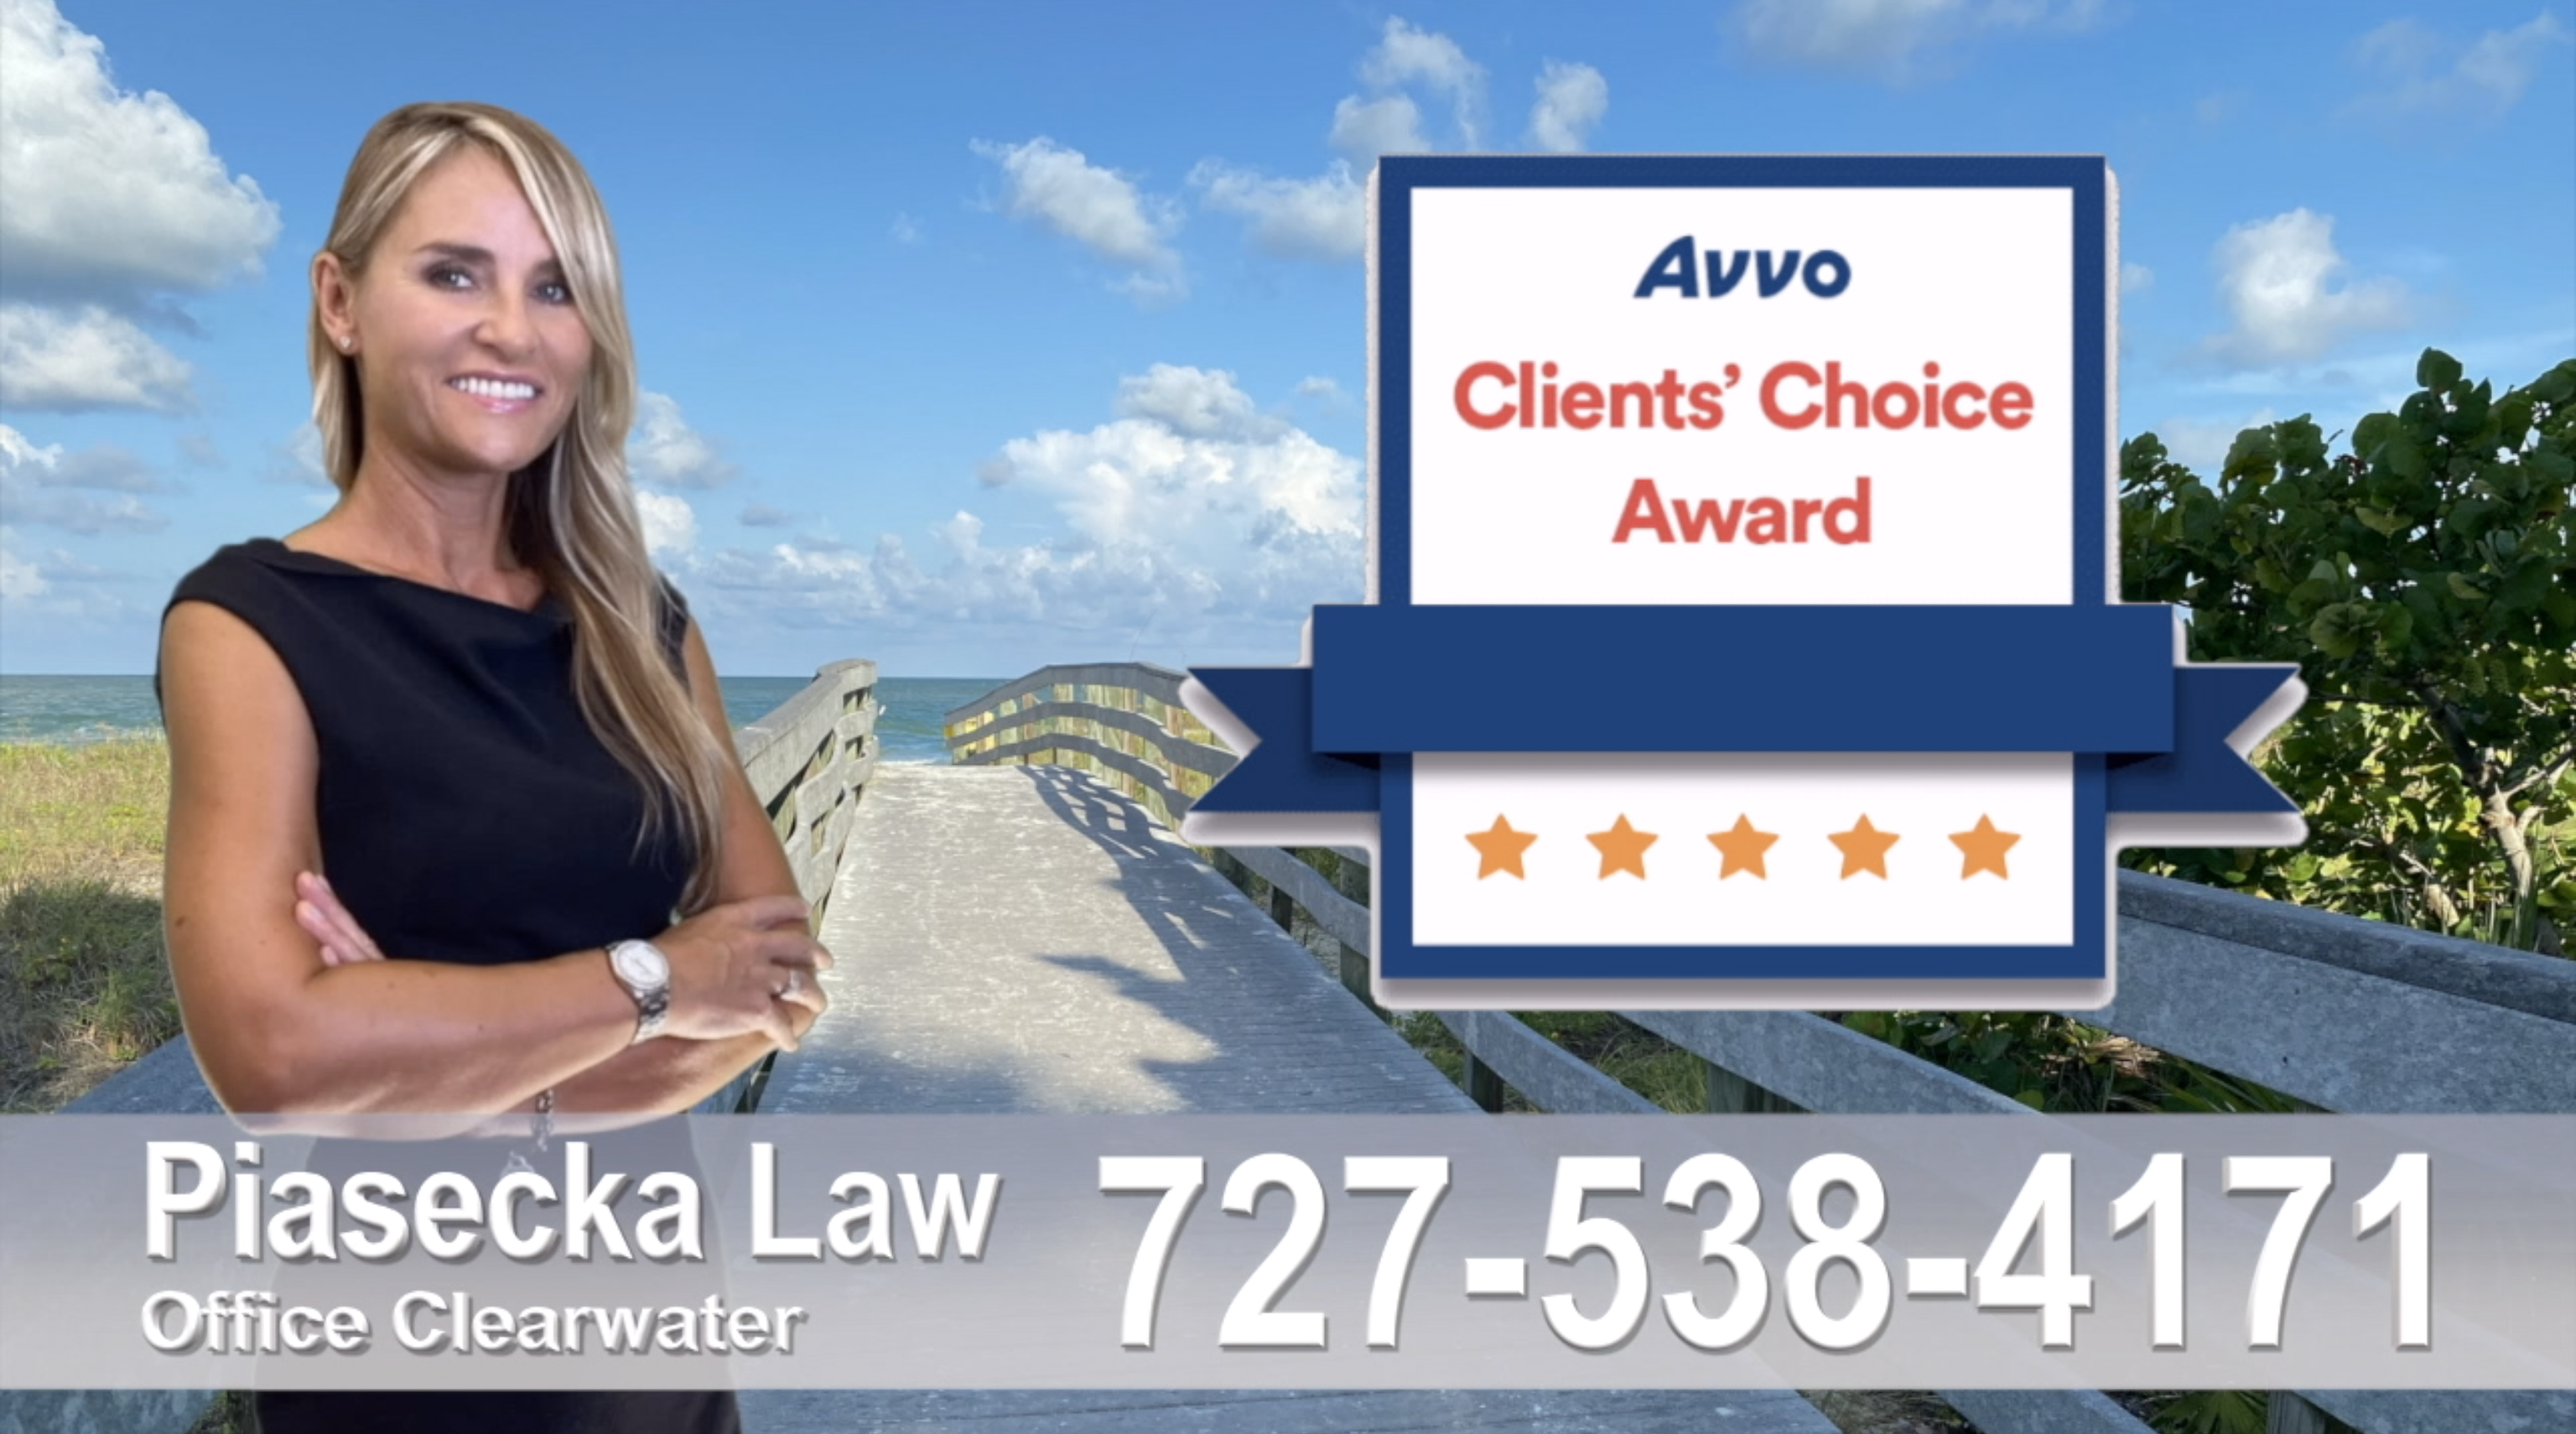 Wills and Trusts, Polish, attorney, polish, lawyer, clients, reviews, client's, avvo, award